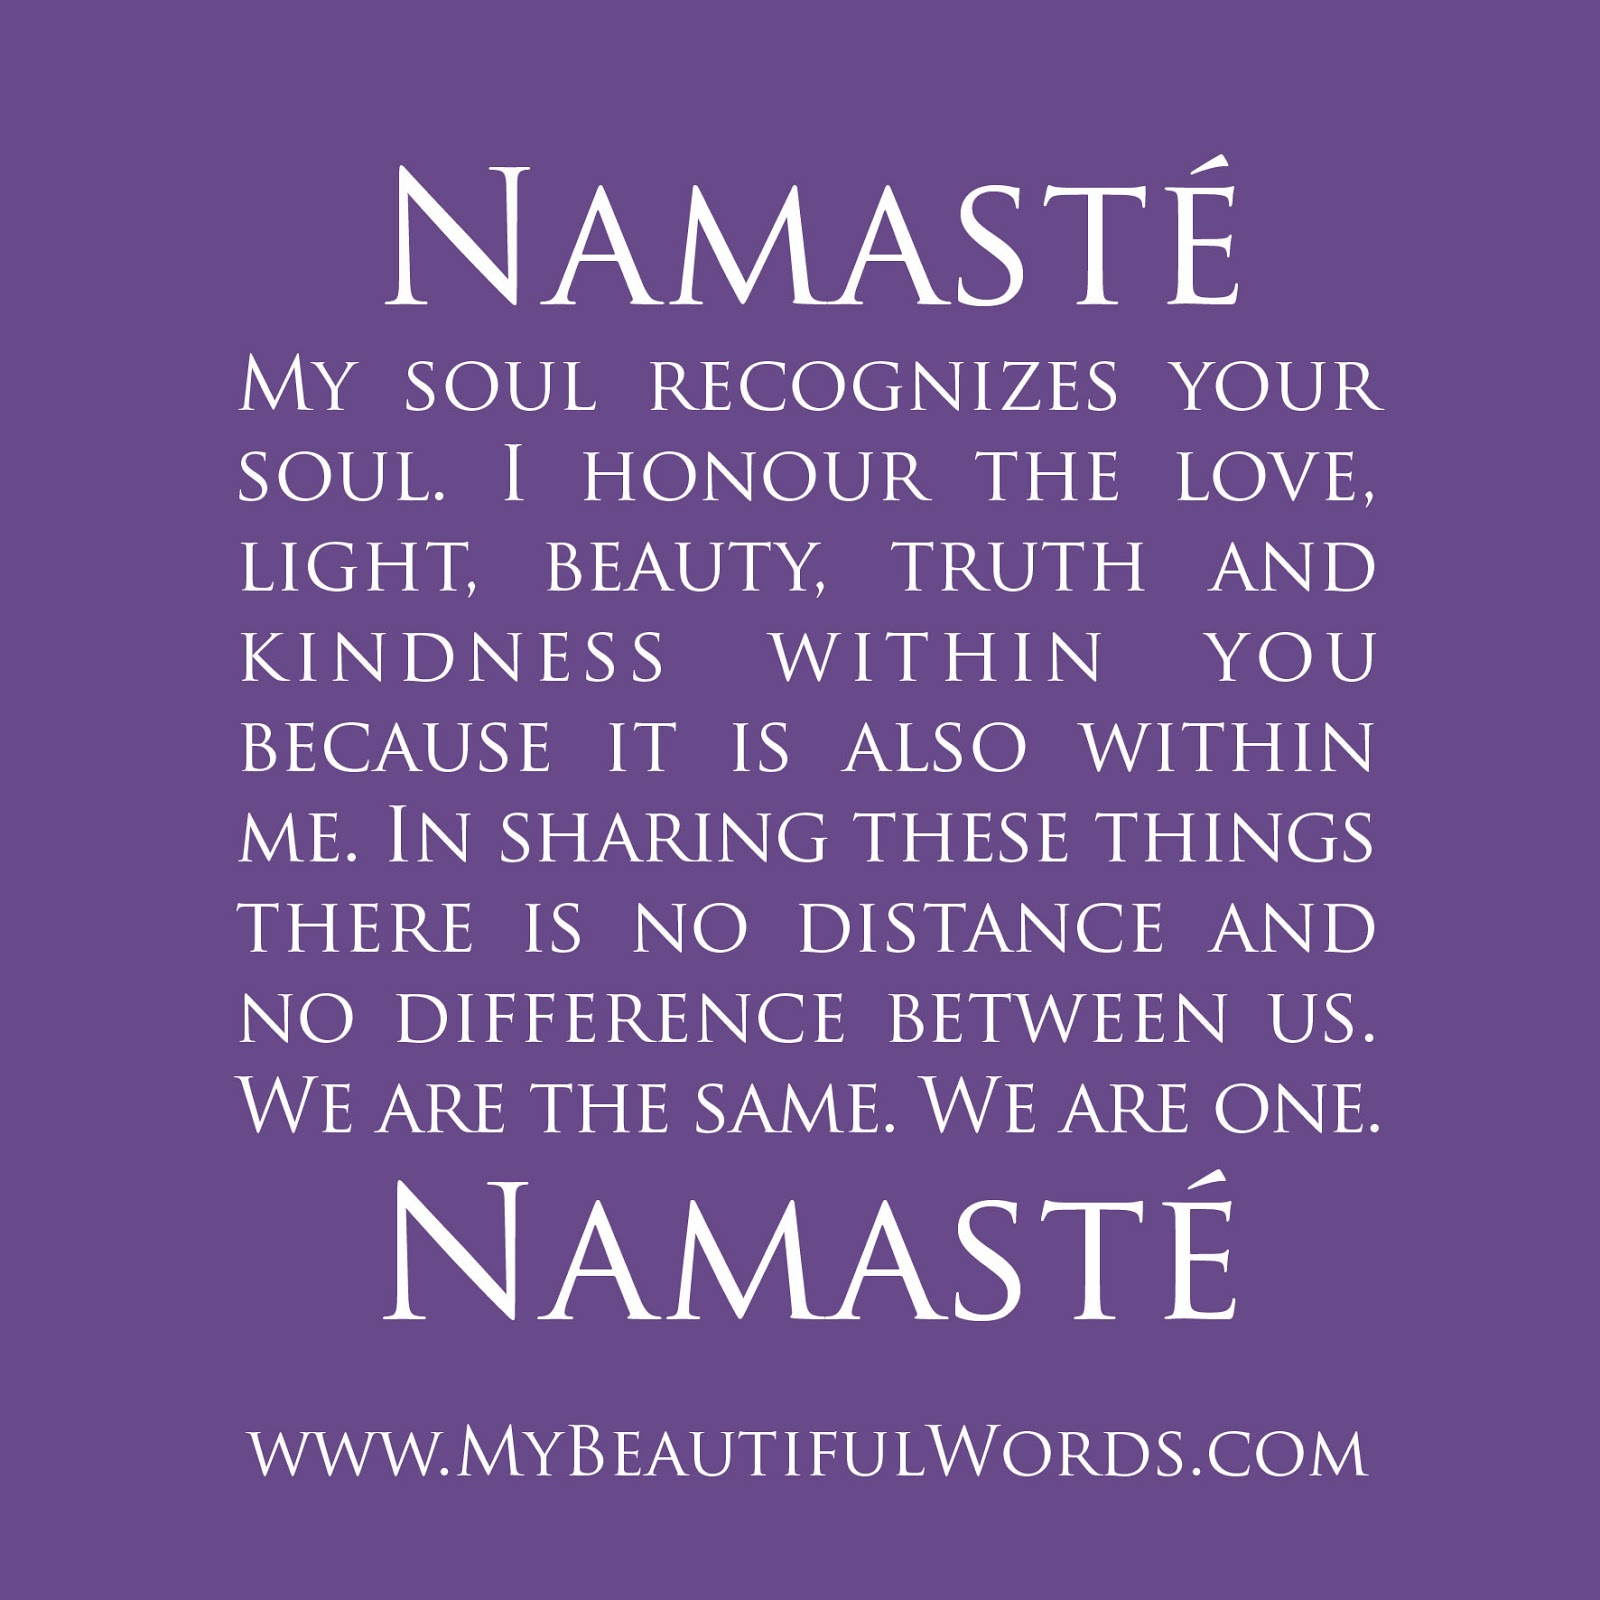 Namaste Quotes Sayings. QuotesGram